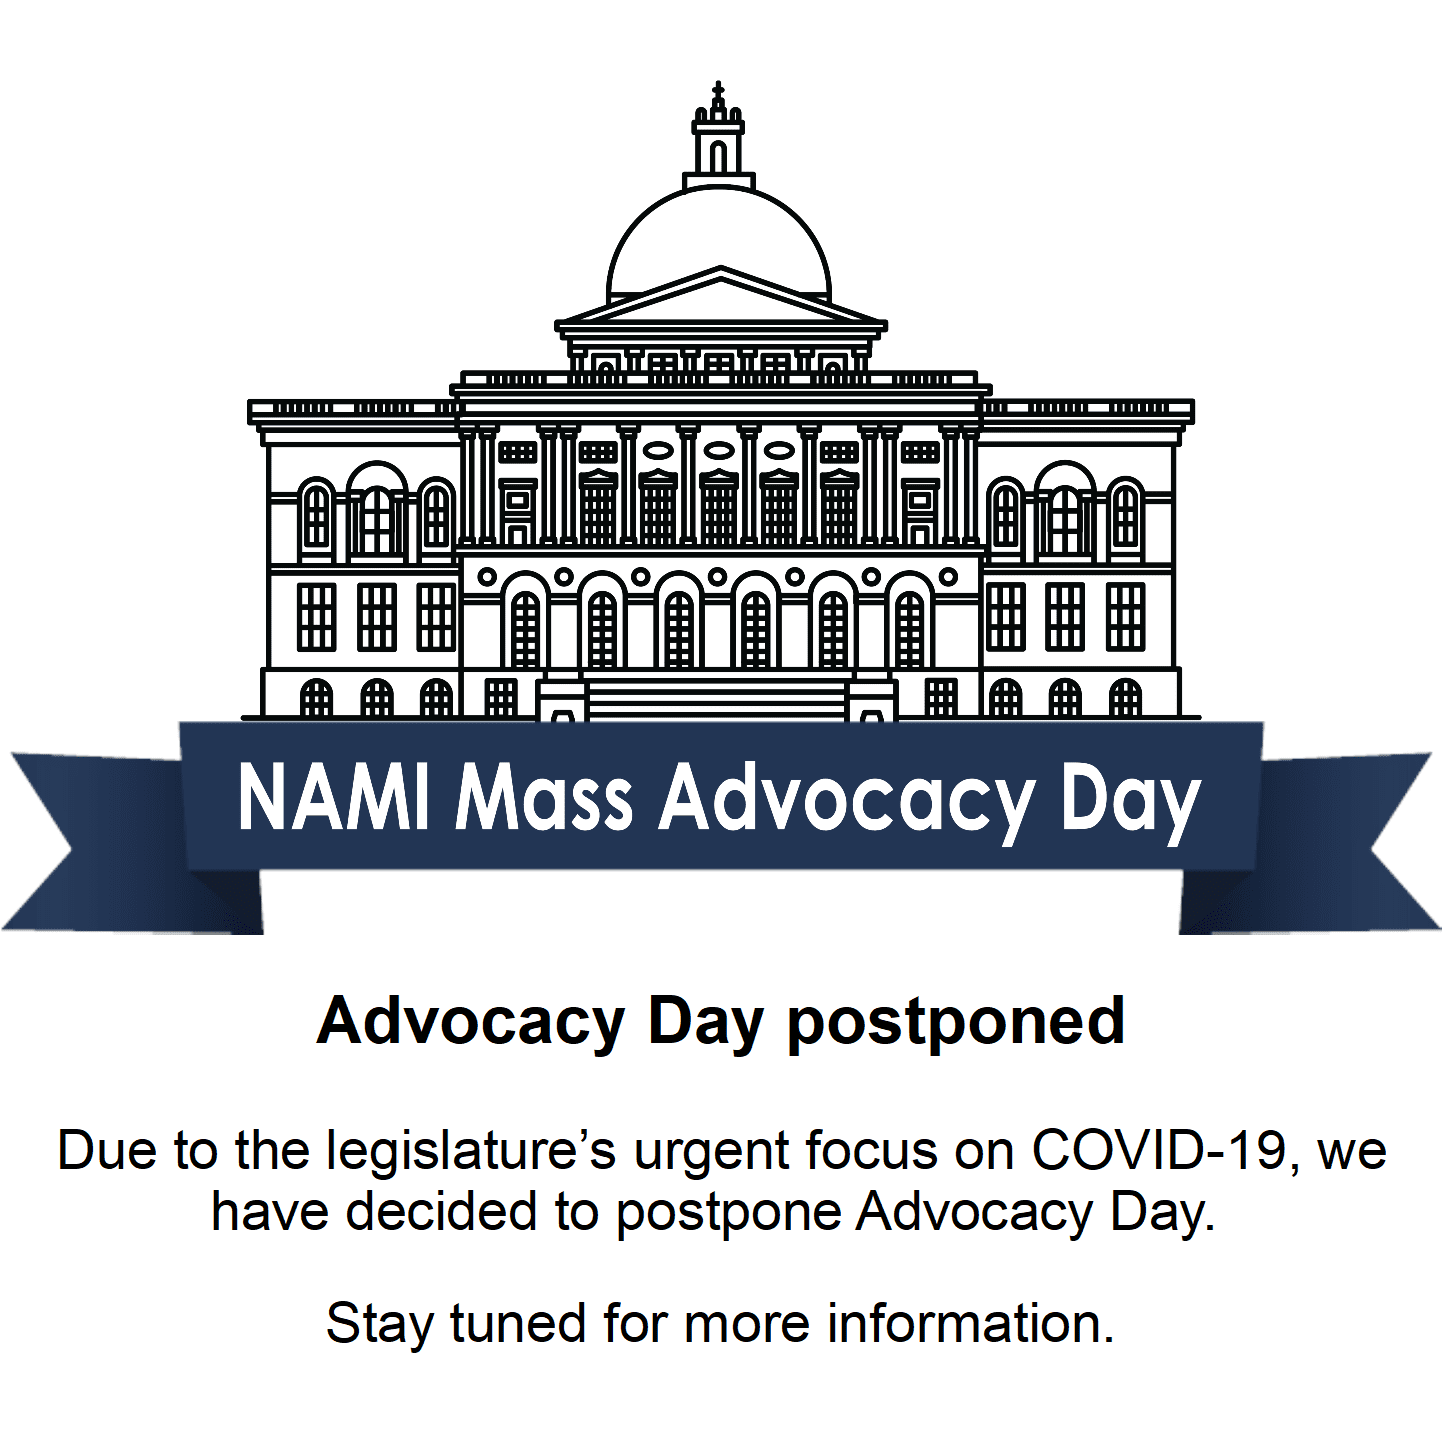 Advocacy Day postponed Due to the legislature's urgent focus on COVID-19, we have decided to postpone Advocacy Day. Stay tuned for more information.